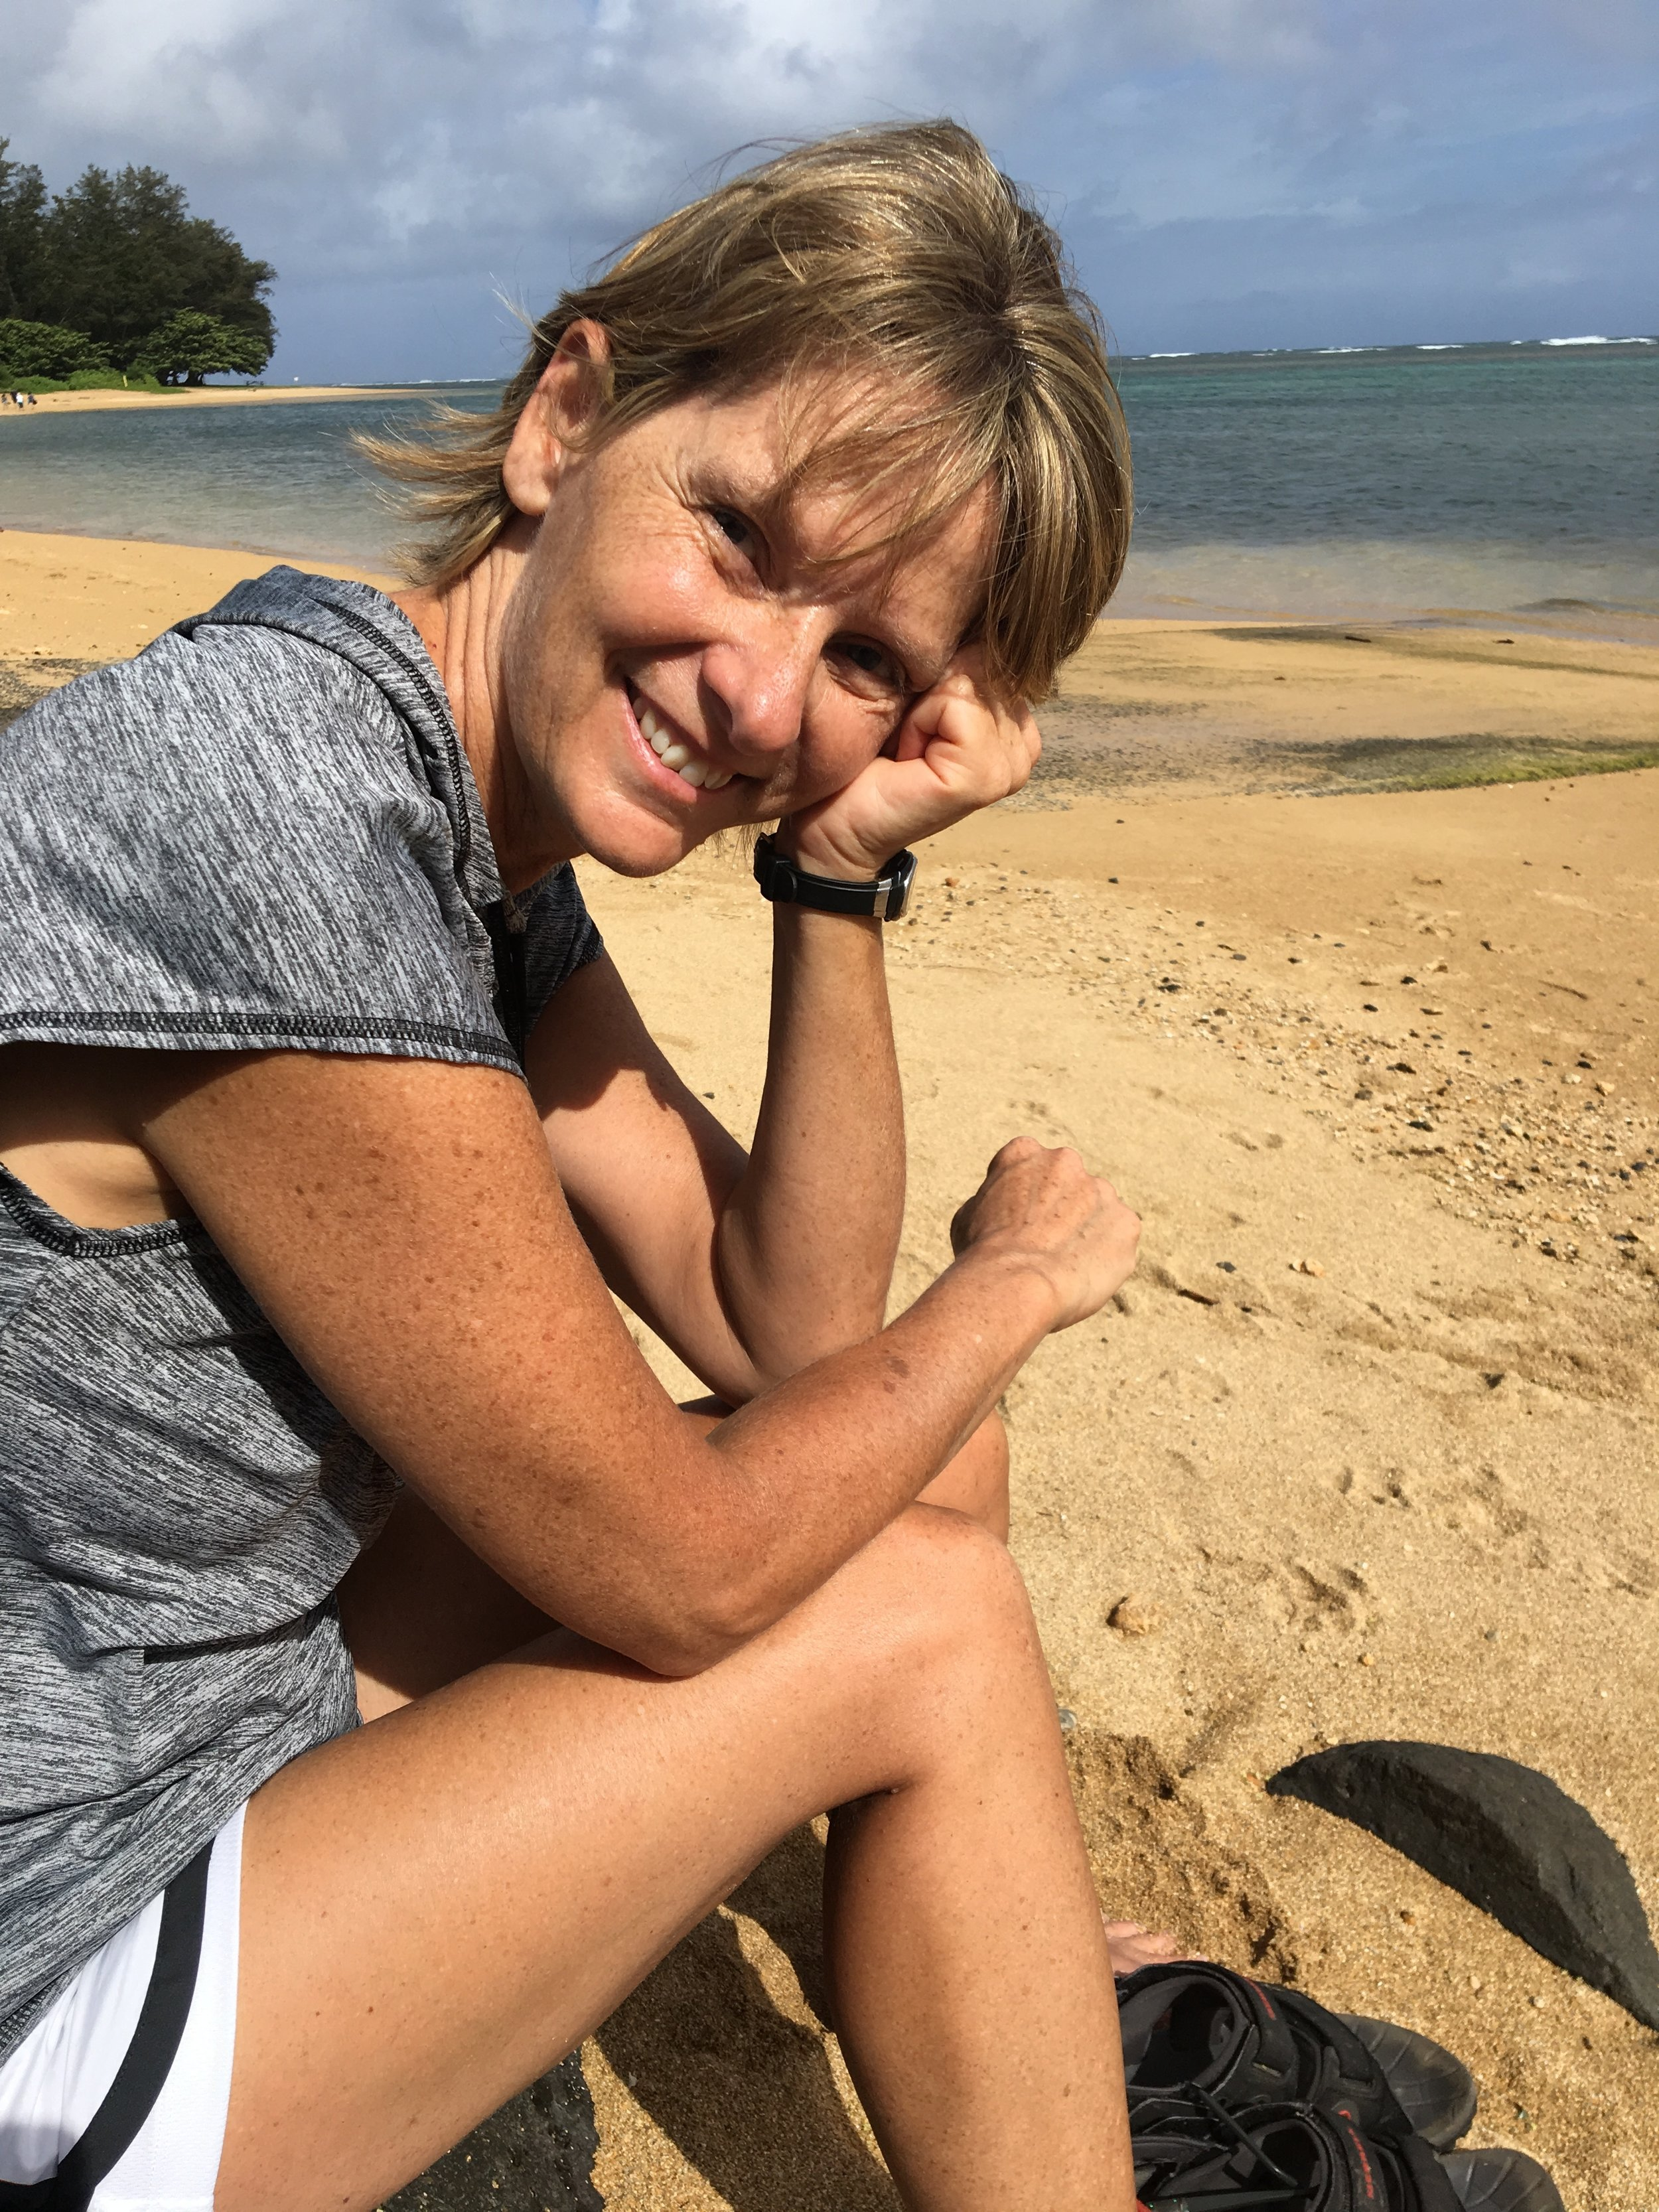 Retreat Instructor - DeEtta is registered with Yoga Alliance as E-RYT200, YACEP (Continuing Education Provider), is an Urban Zen Integrative Therapistᵀᴹ, a certified y4c (yoga 4 cancer) teacher and a 'Do-It-Yourself' Diva. Her love for yoga started to grow from inside; from that tiny spark that is in everyone but we sometimes forget about. Her classes are creative, playful and sometimes inspired by her current DIY project. Yoga is a lot like life, and life is a lot like yoga; both requiring balance, mindful breathing and sweat equity.She applies a combination from all of her teachers and trainings to each class to make them accessible for everyone, and loves to witness the